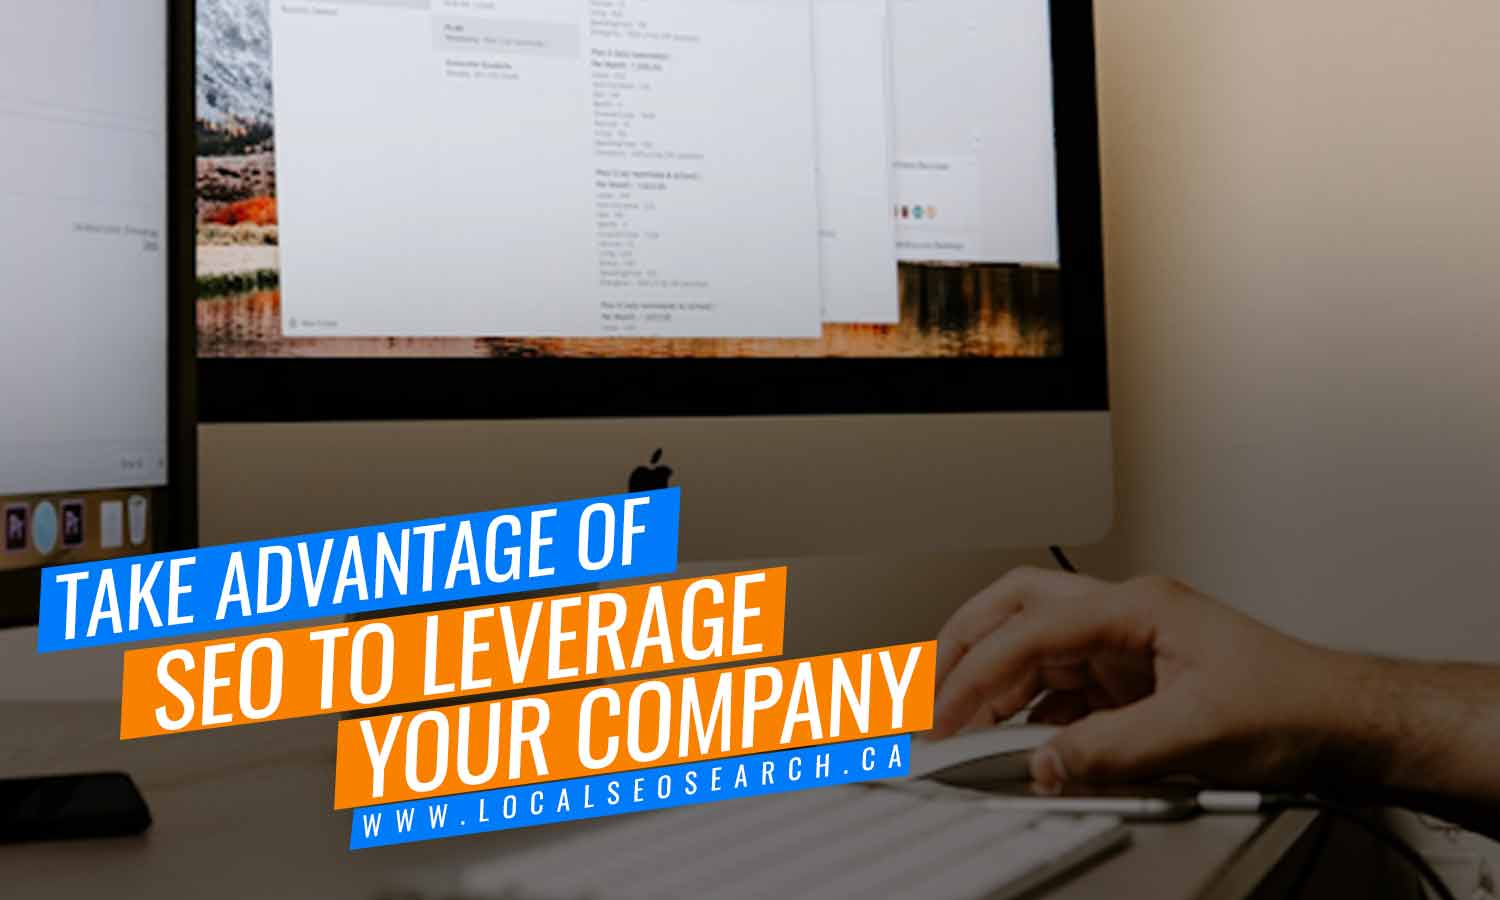 Take-advantage-of-SEO-to-leverage-your-company